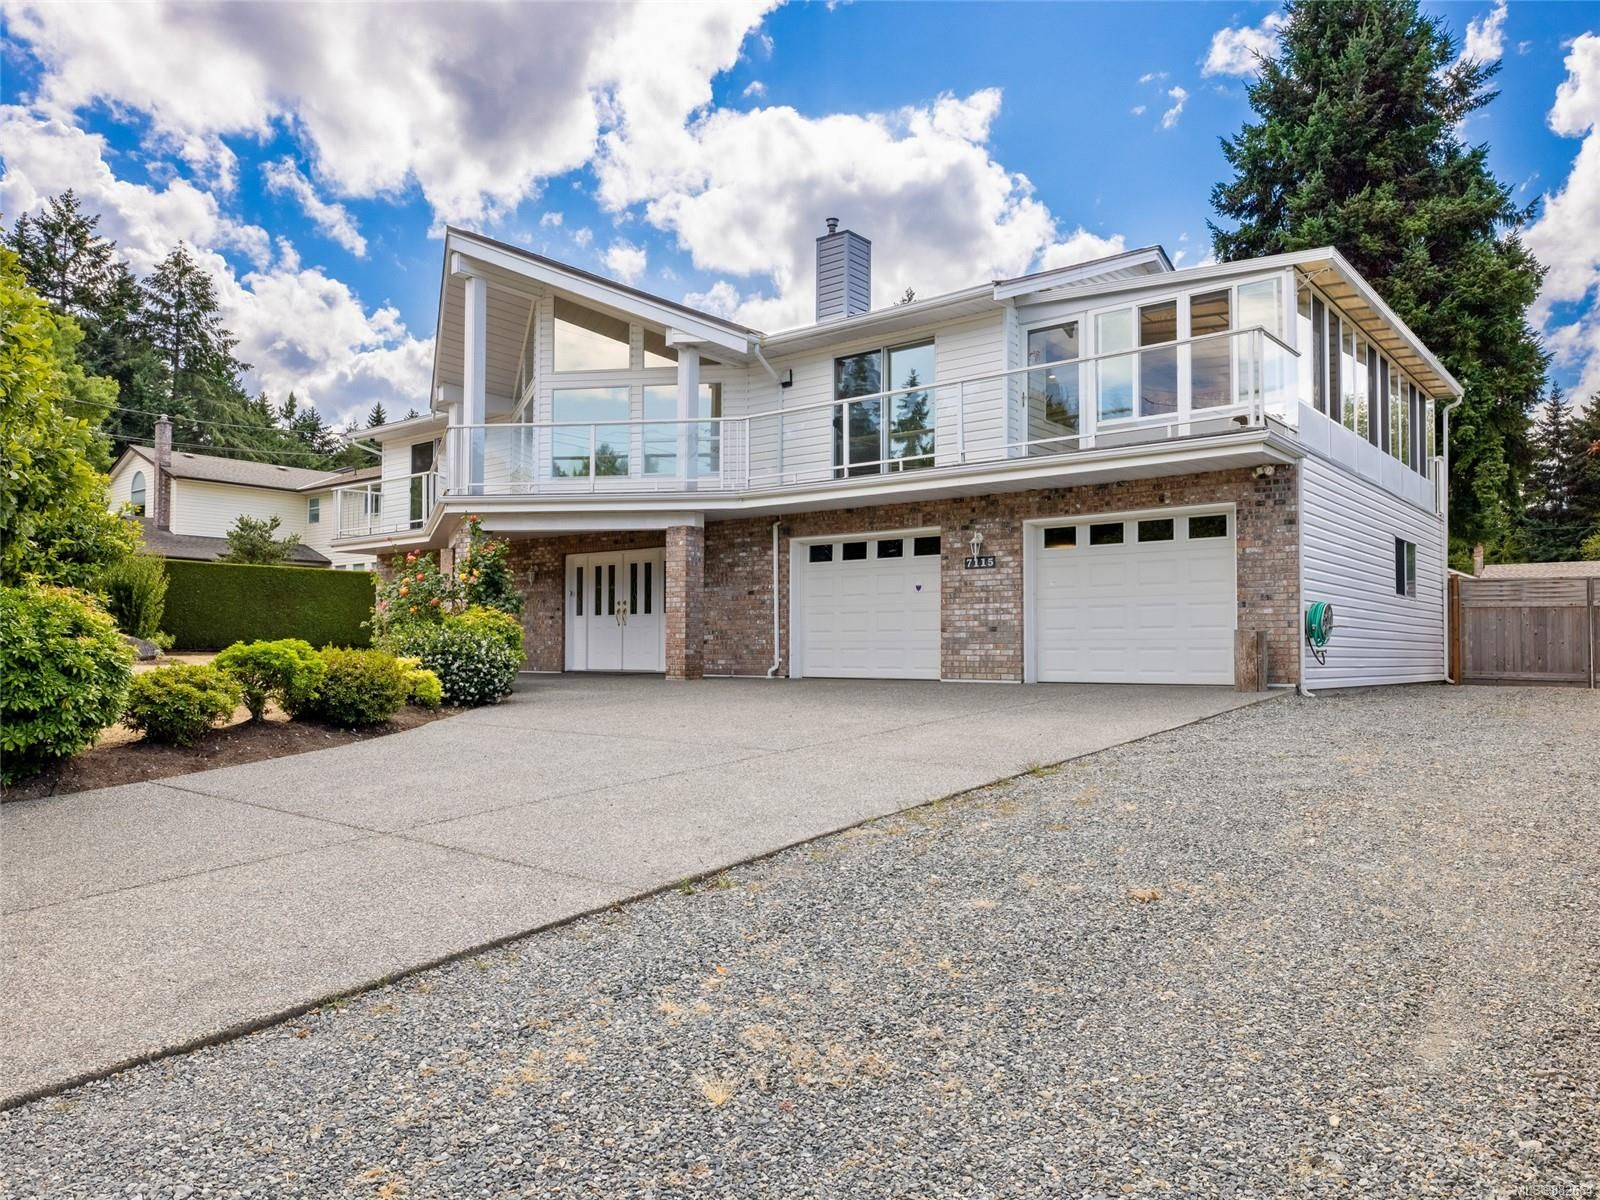 Main Photo: 7115 SEBASTION Rd in : Na Lower Lantzville House for sale (Nanaimo)  : MLS®# 882664